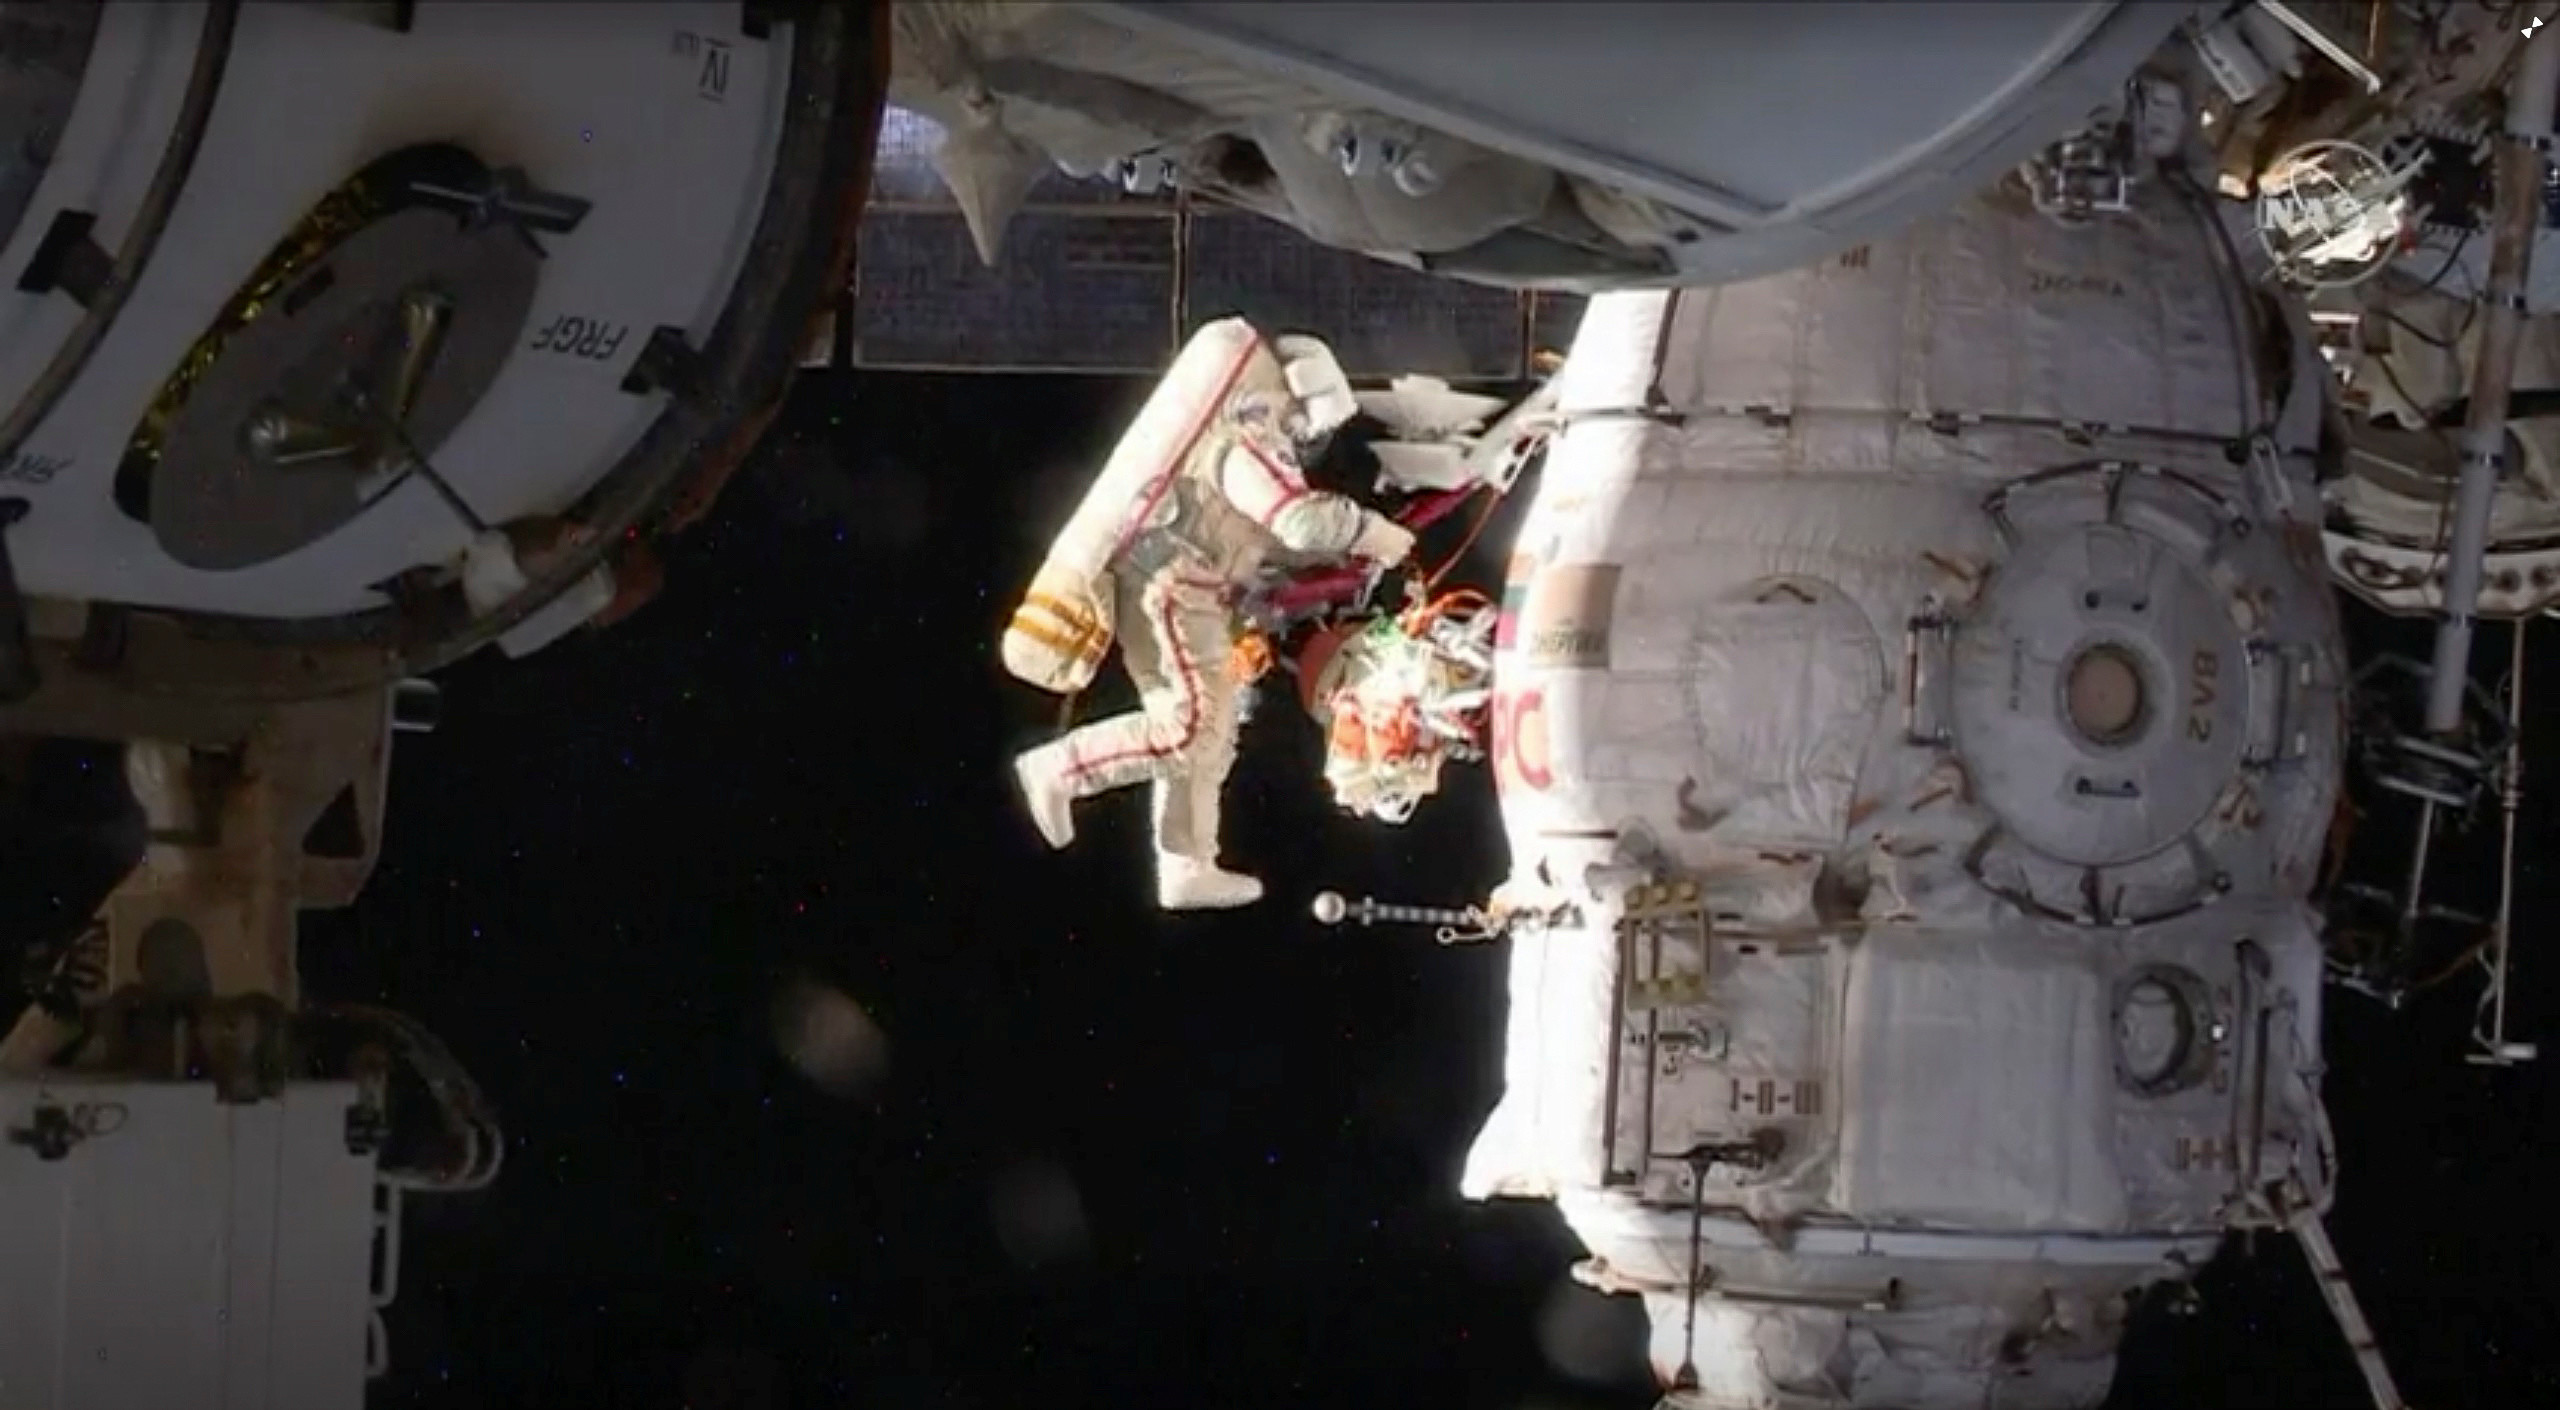 Russian cosmonaut Oleg Kononenko conducts a spacewalk outside the International Space Station Space (ISS) in this still image captured from NASA video in space, December 11, 2018. Courtesy NASA TV/Handout via REUTERS ATTENTION EDITORS - THIS IMAGE HAS BEEN SUPPLIED BY A THIRD PARTY.     TPX IMAGES OF THE DAY - RC13DD990970